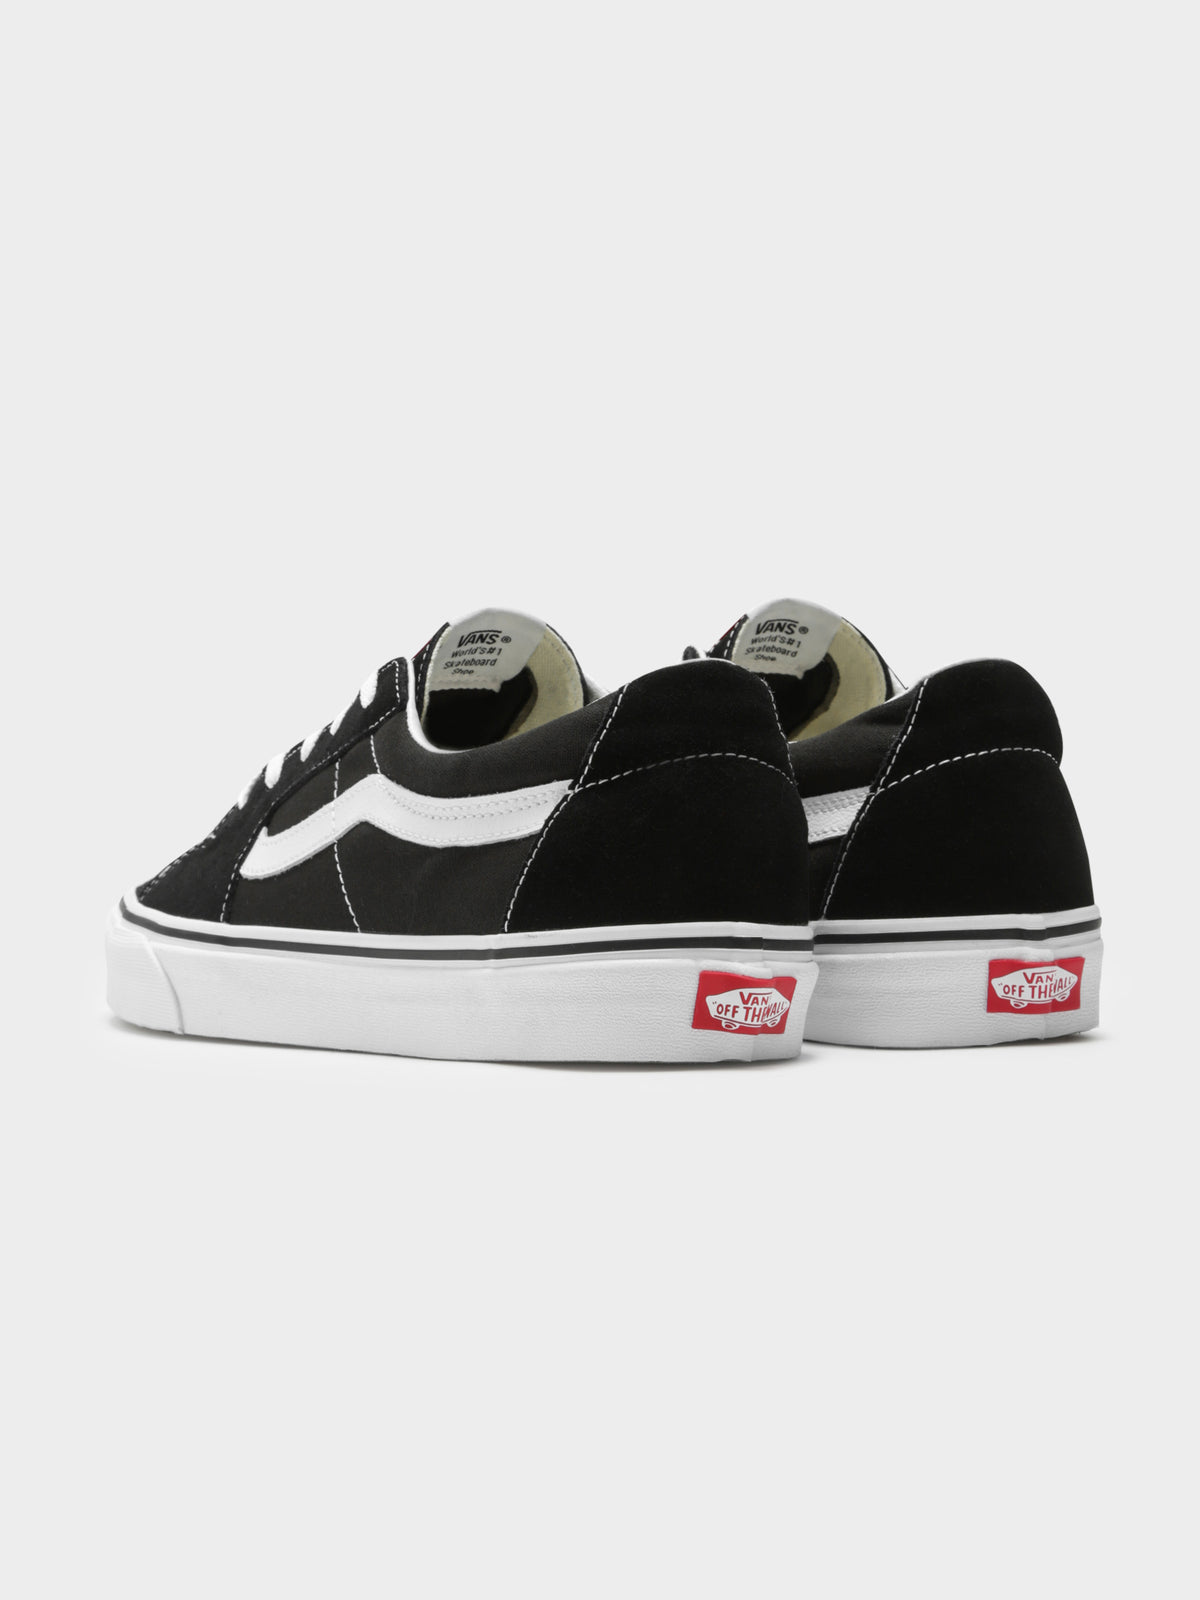 Unisex Sk8-Low Sneakers in Black & White